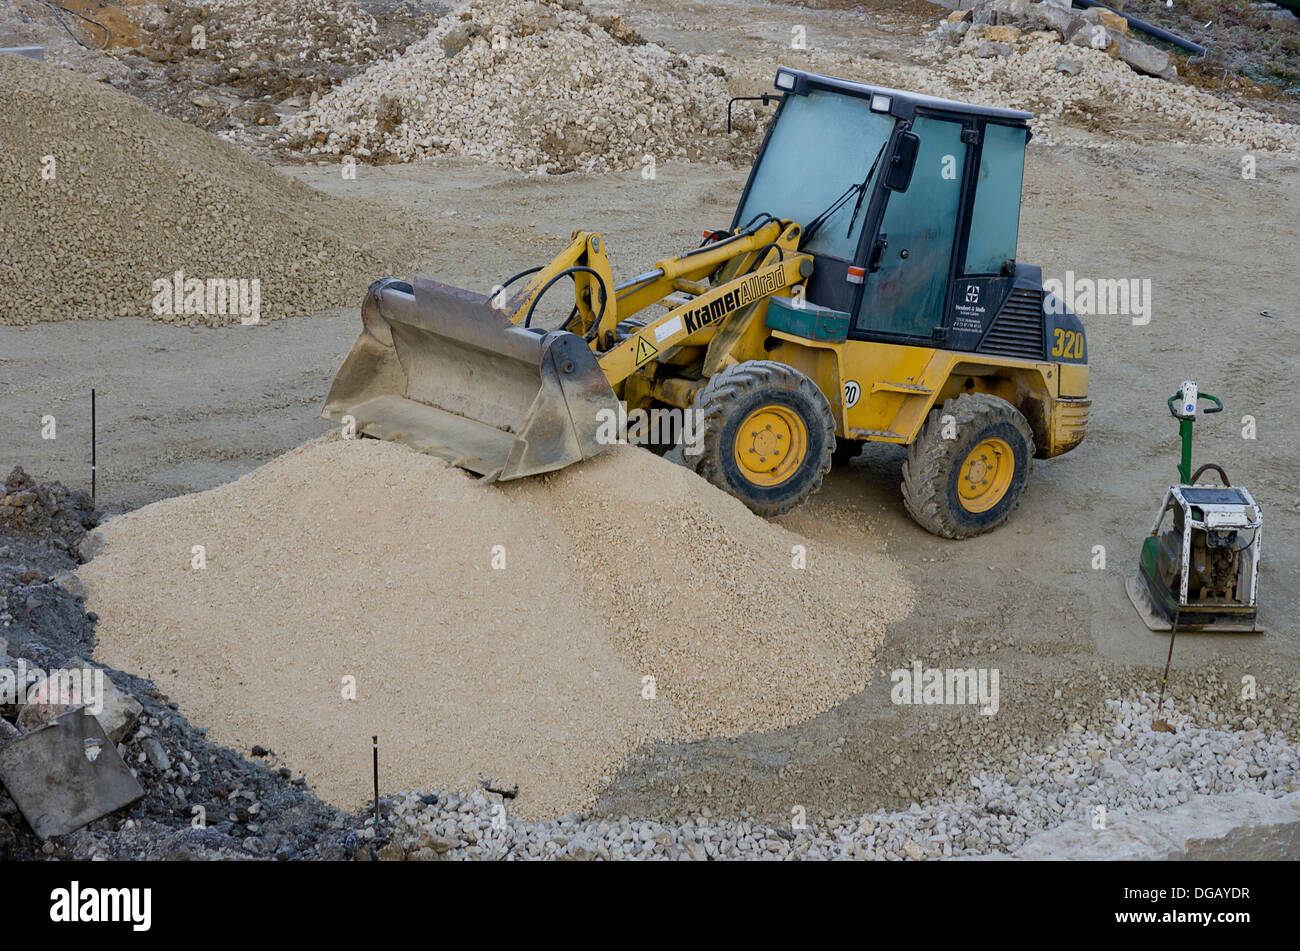 Small 4WD Wheel Loader - Stock Image